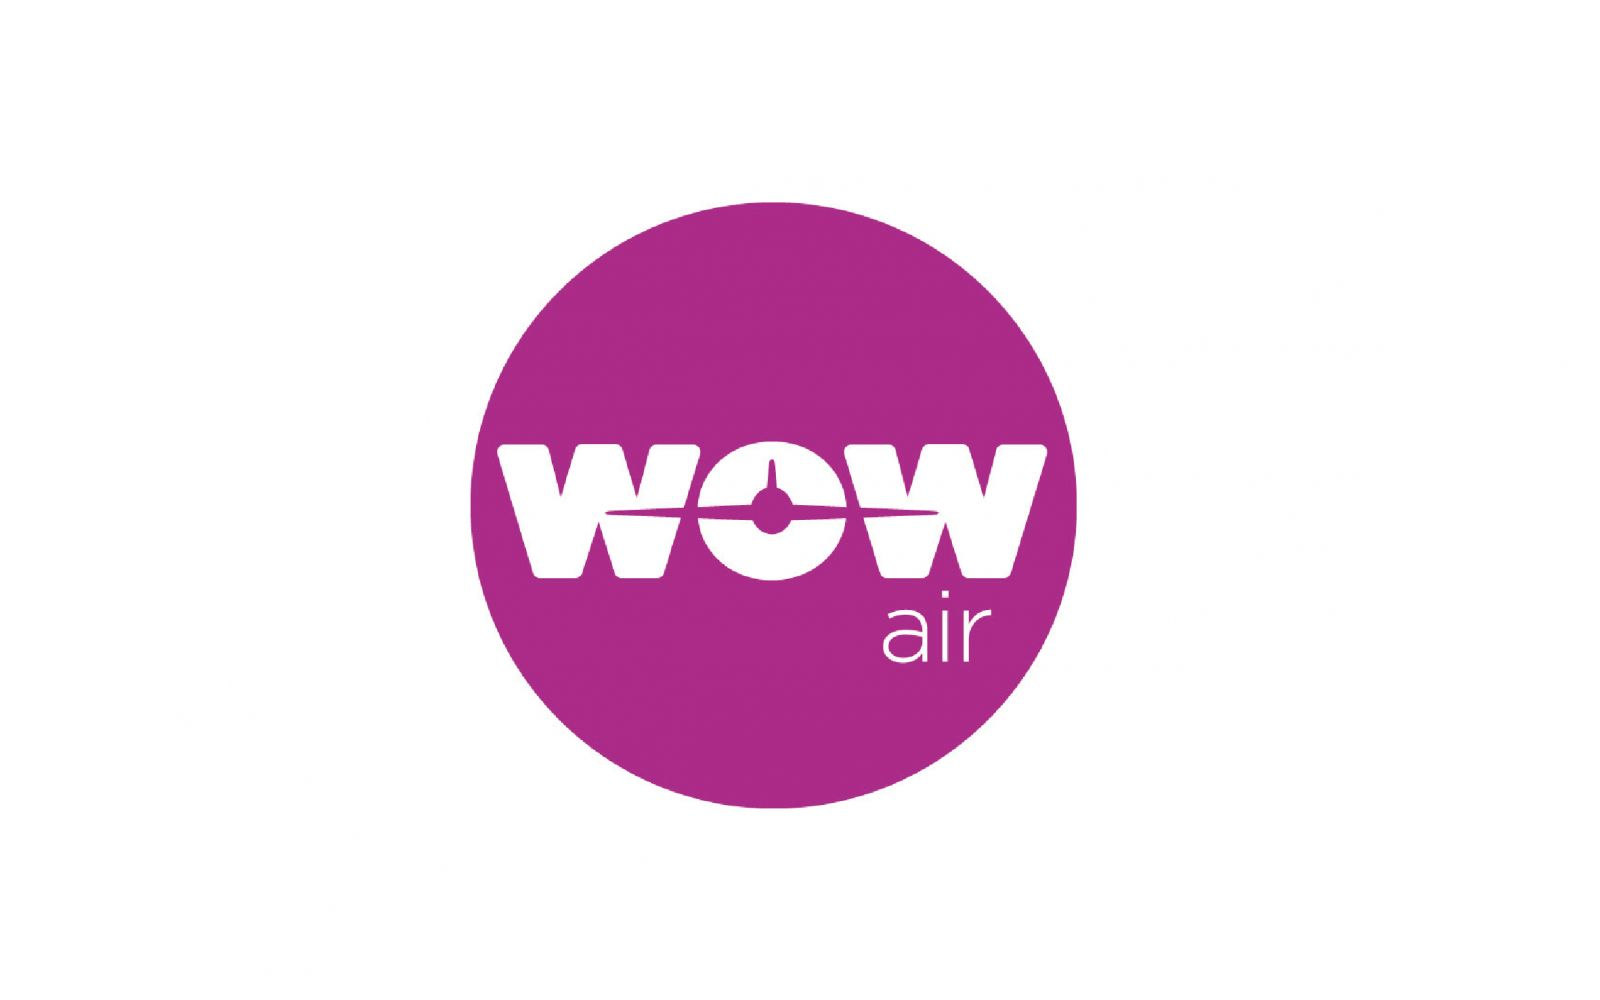 WOW air introduces flights from London Gatwick and Dublin Airports and selects ICTS to provide security